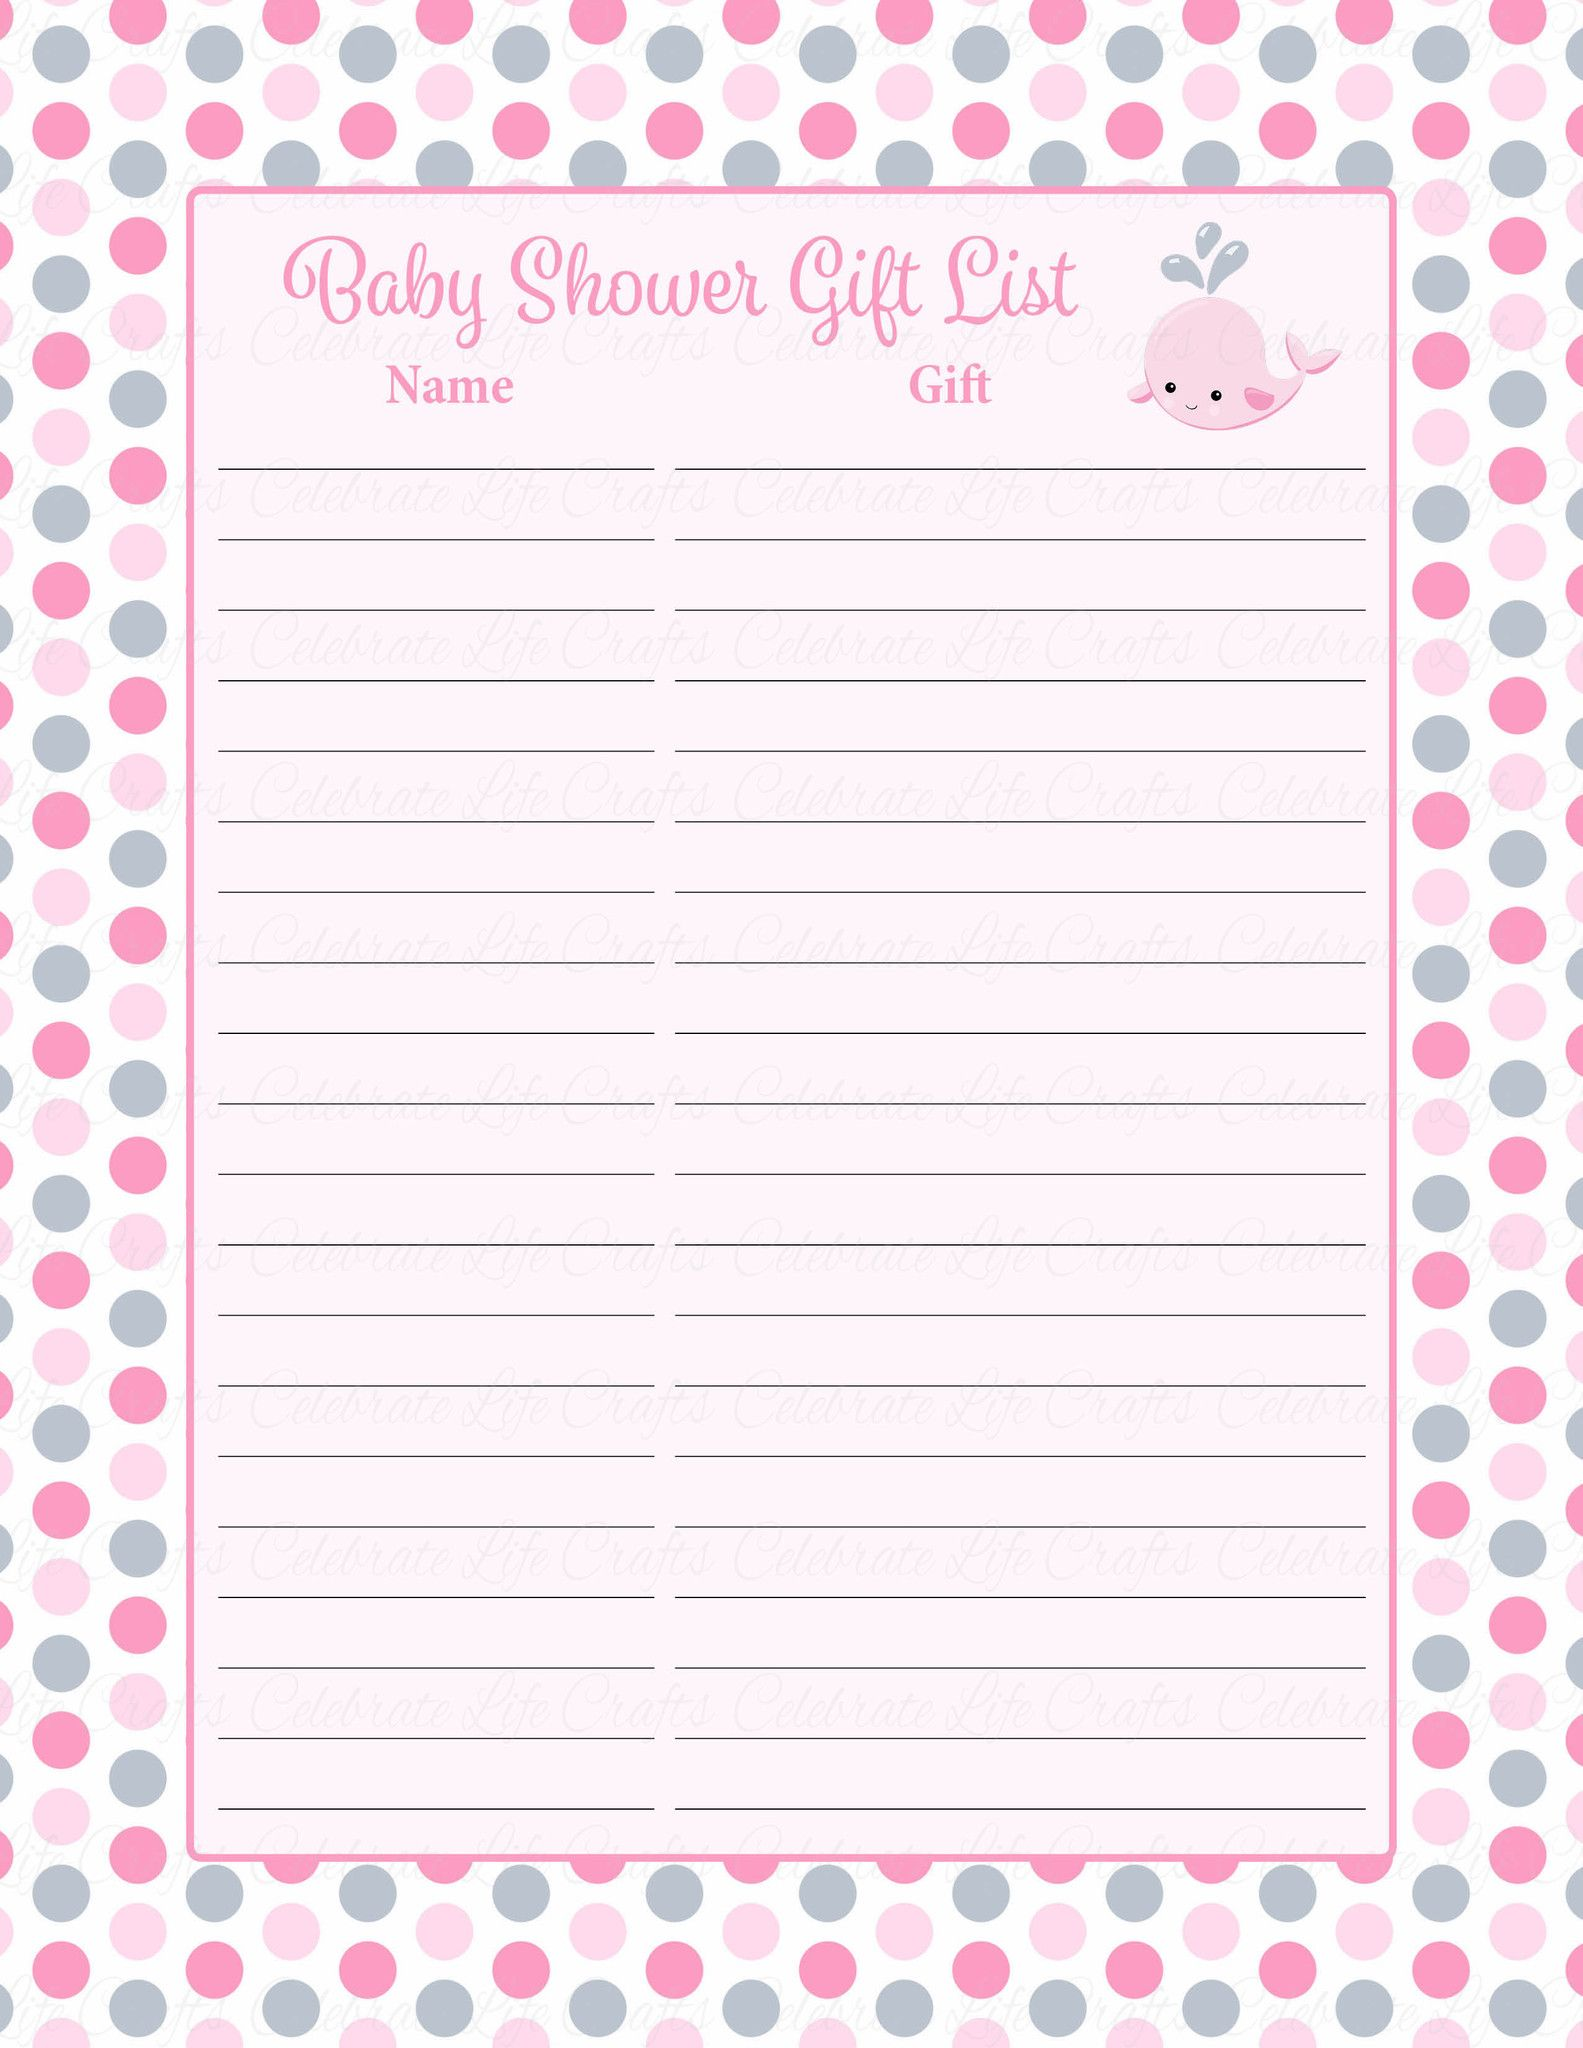 picture relating to Free Printable Baby Shower Guest List identify Kid Shower Reward Listing Mounted - Printable Obtain - Crimson Grey